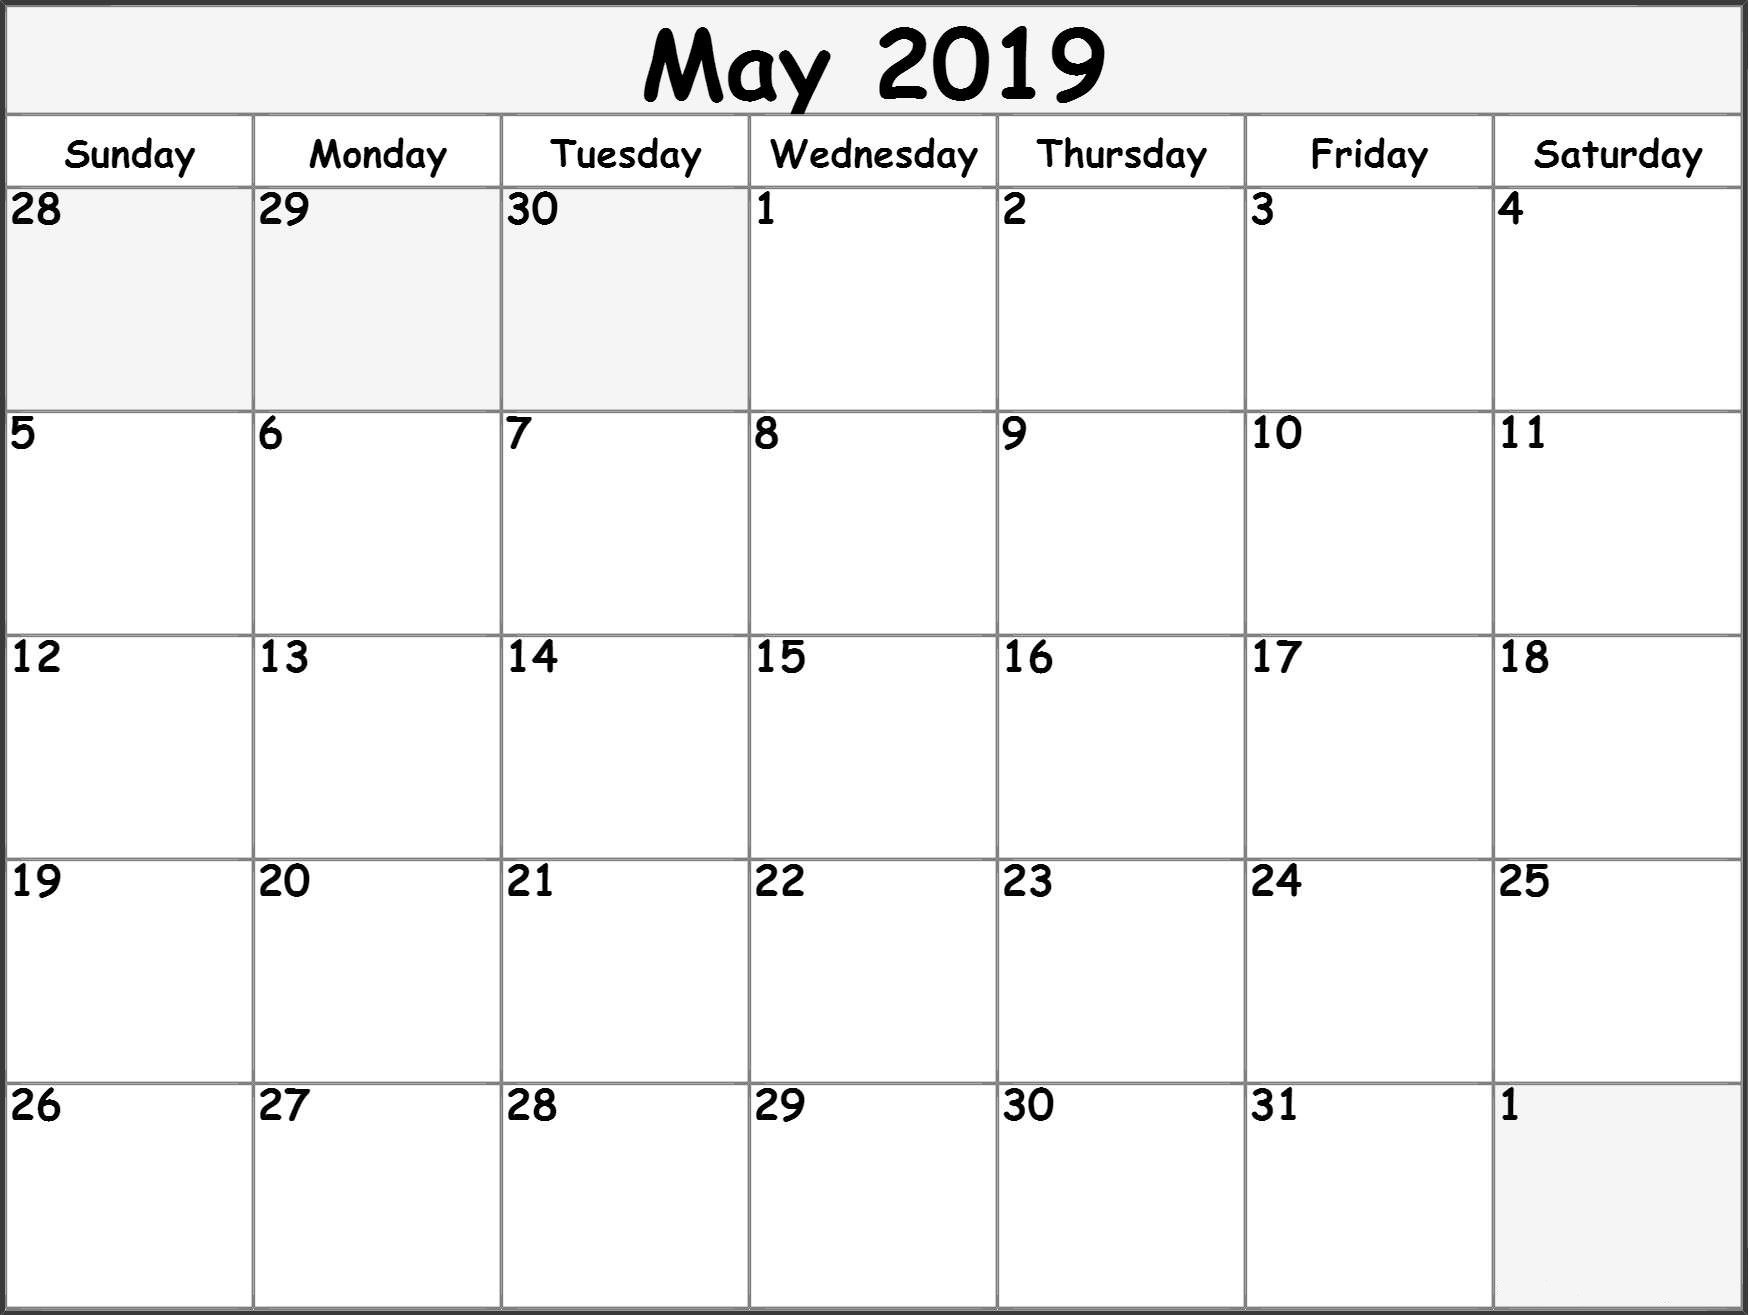 May 2019 Printable Calendar Templates - Free Blank, Pdf, Holidays pertaining to Free Downloadable Monthly Calendar Templates